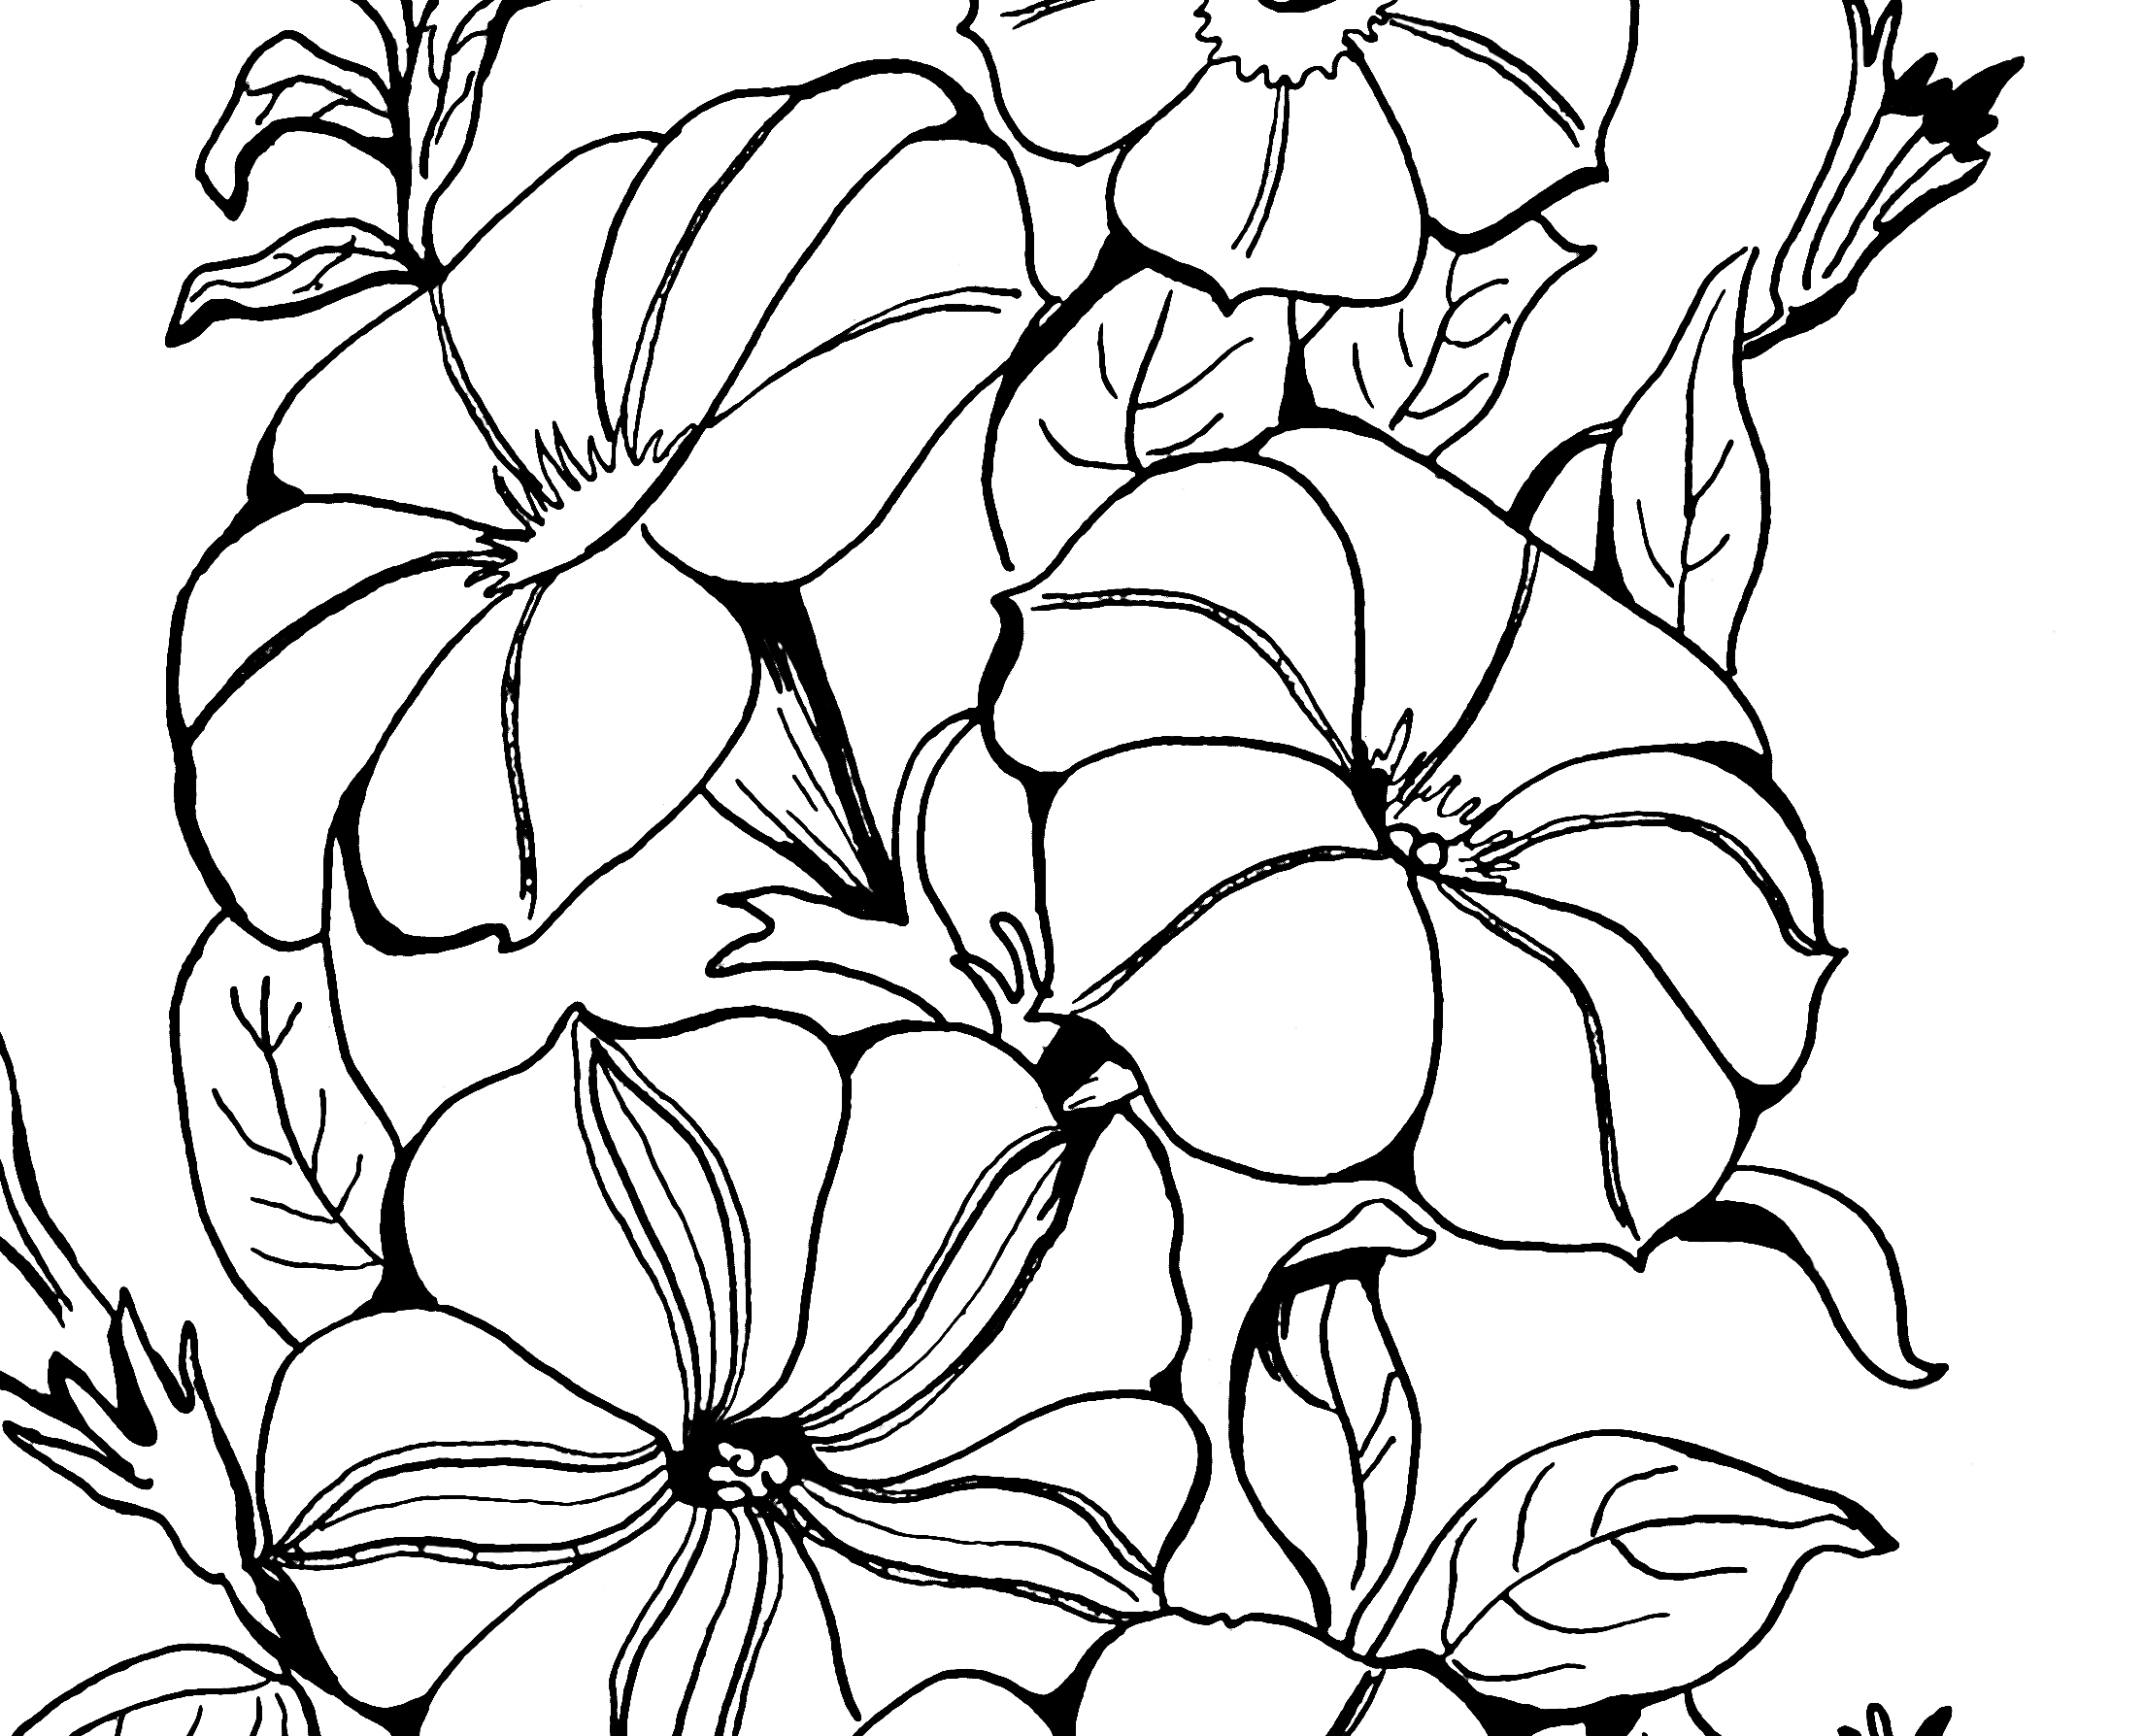 Petunia clipart black and white Petunias! Graphics Coloring Page The